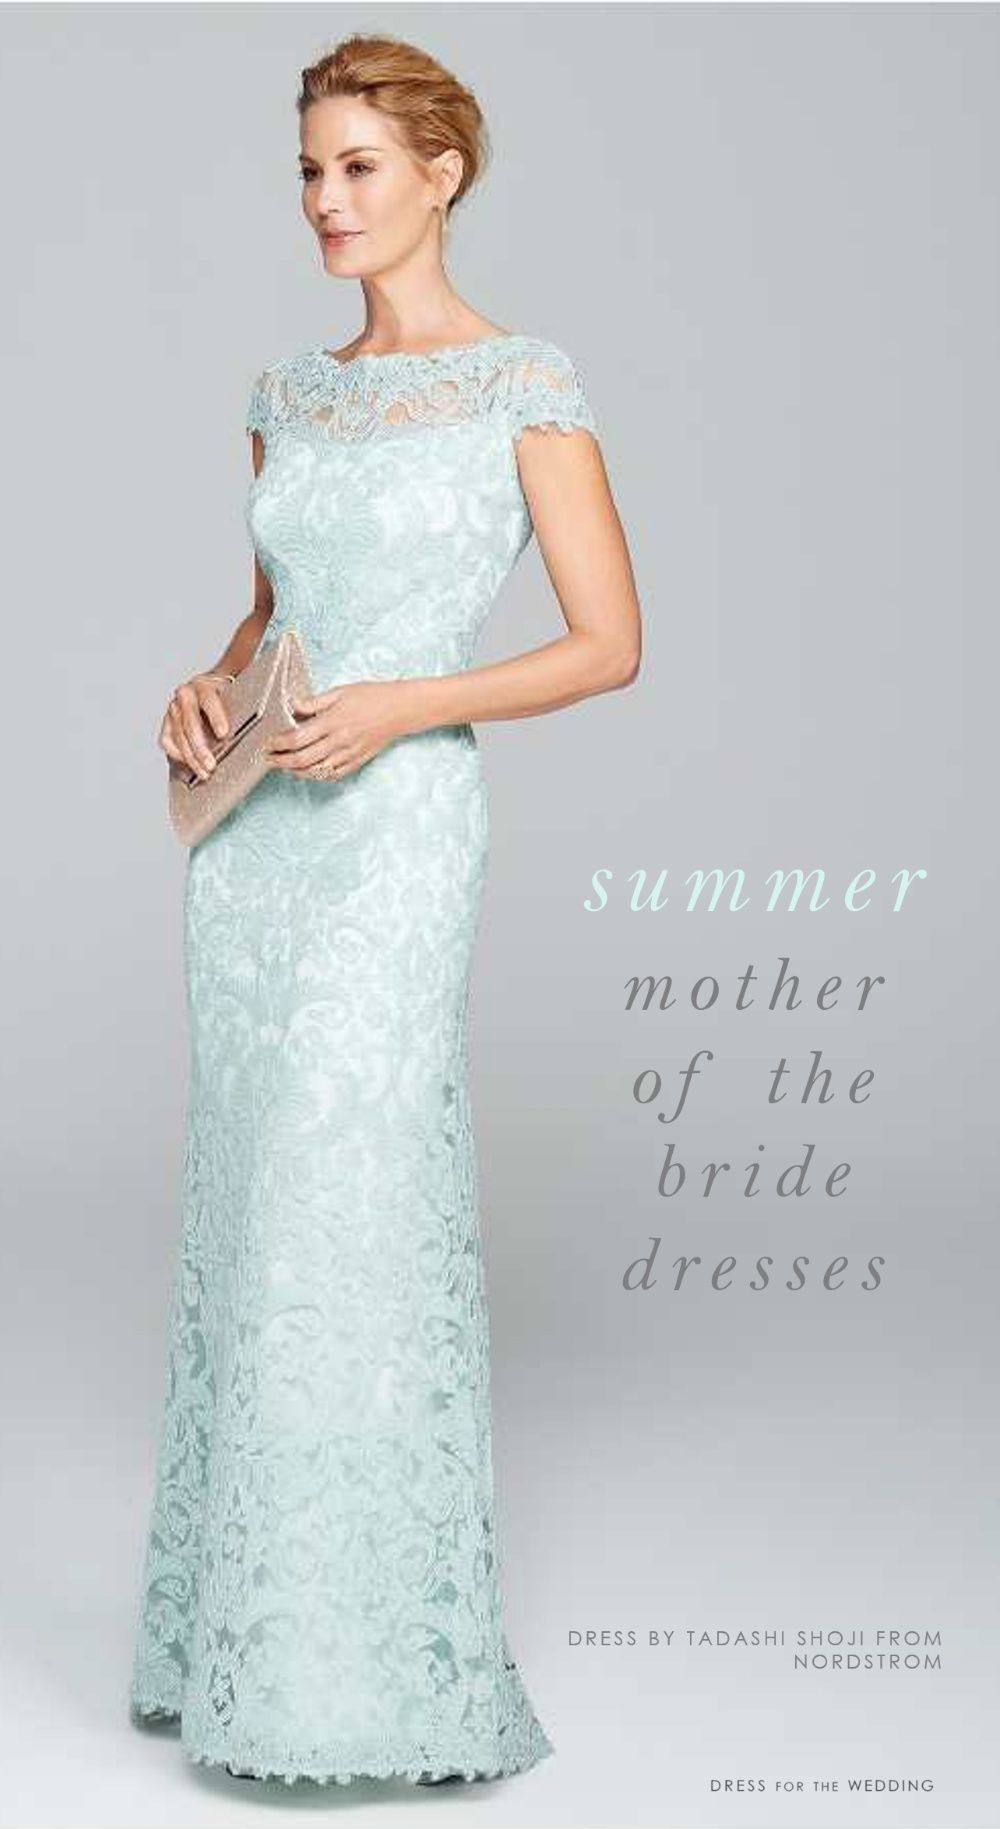 d5dd09e9902 Summer Dresses for Mothers of the Bride or Mothers of the Groom Featured  Dress  Tadashi Shoji Illusion Yoke Lace Gown. Buy it from Nordstrom Summer .